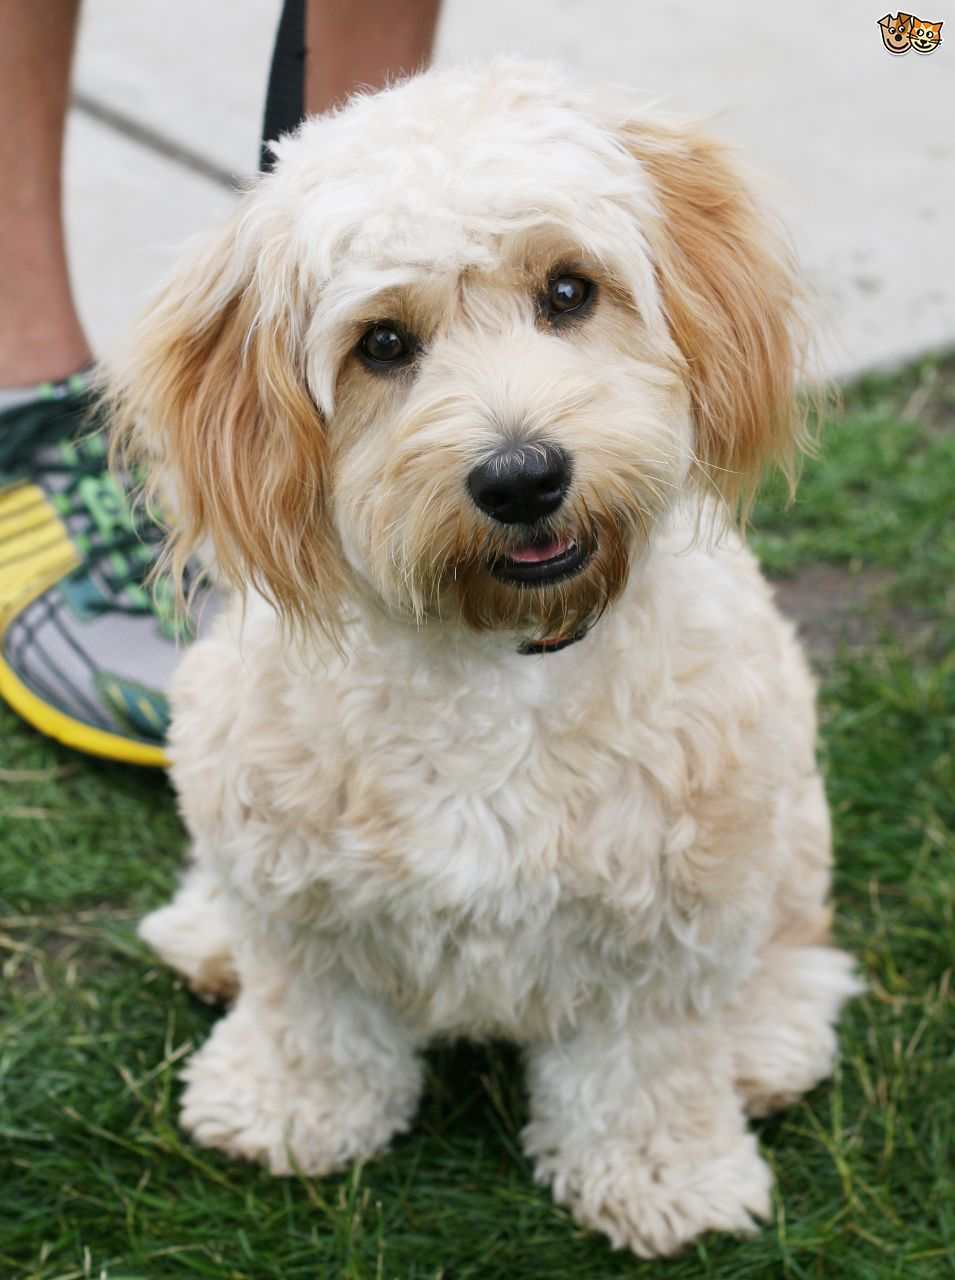 Cavachon Dog Breed Facts Highlights Buying Advice Pets4homes Dog Breeds Cavachon Dog Cavachon